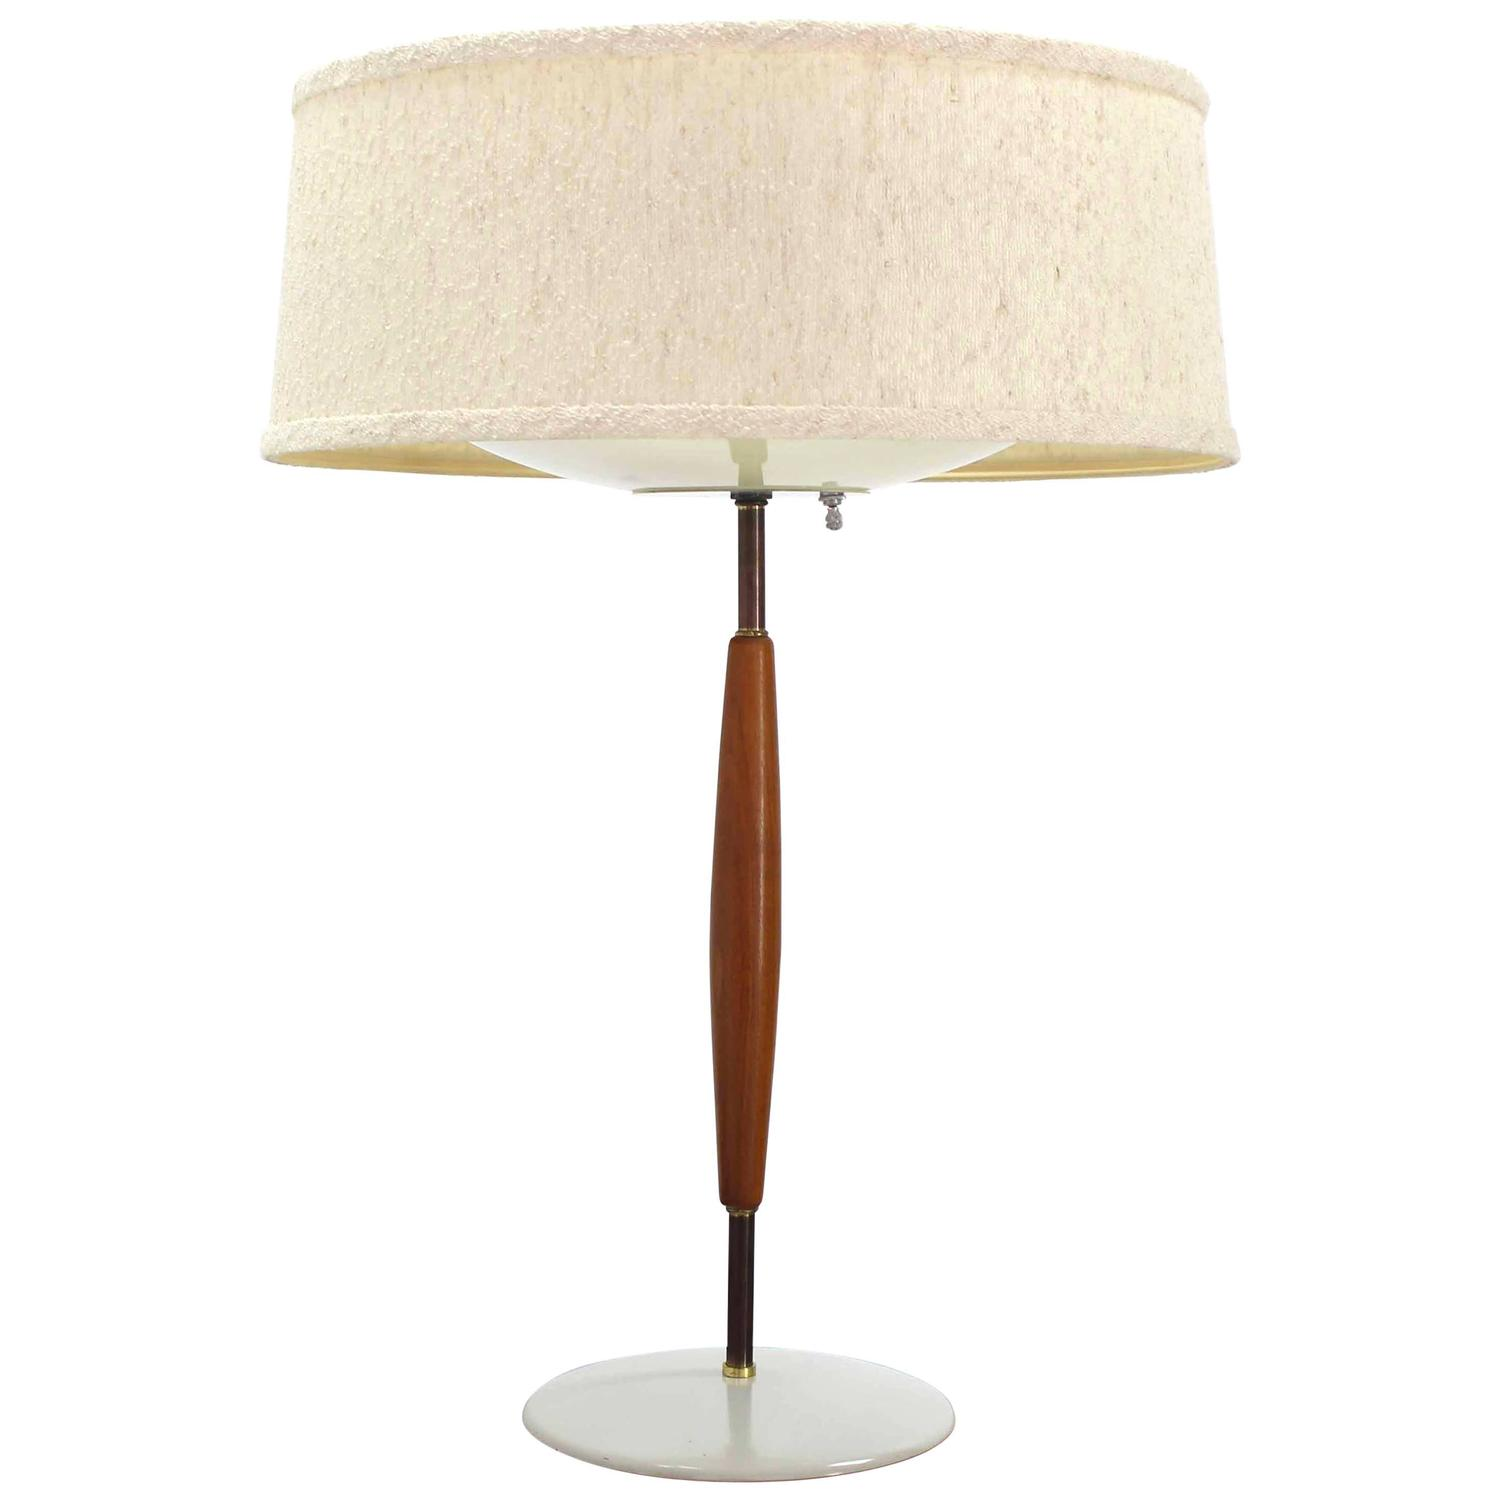 mid century modern walnut and metal table lamp for sale at 1stdibs. Black Bedroom Furniture Sets. Home Design Ideas